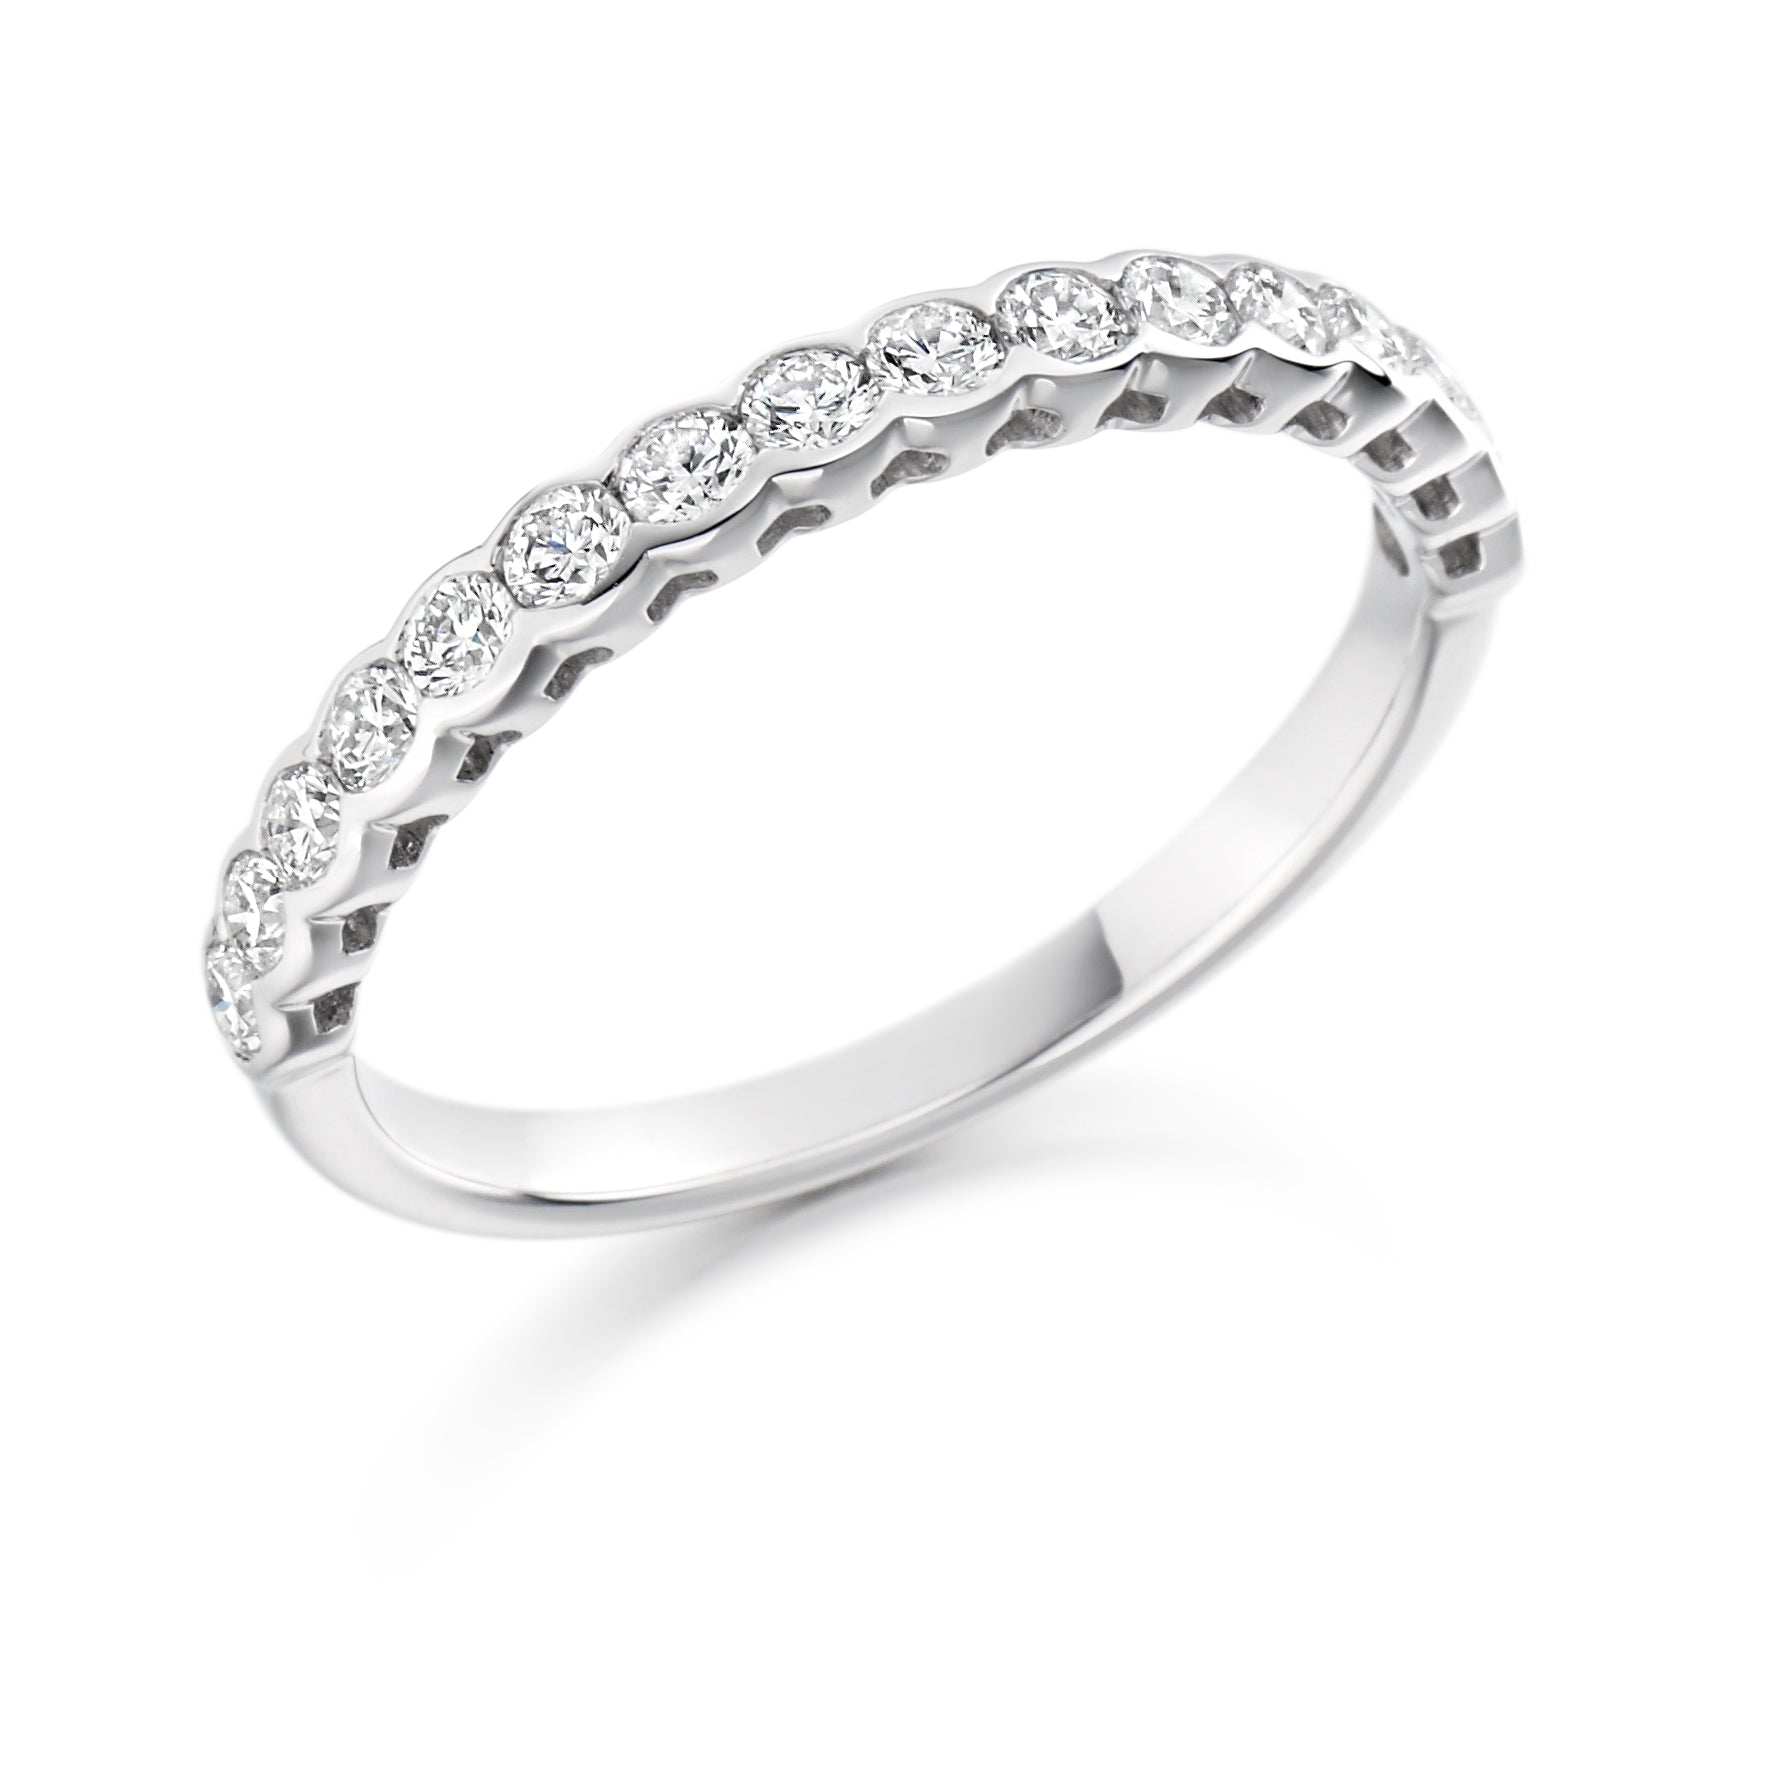 0.50ct Round Brilliant Cut Diamond Bezel Set Wedding Ring - (Home Try-On)